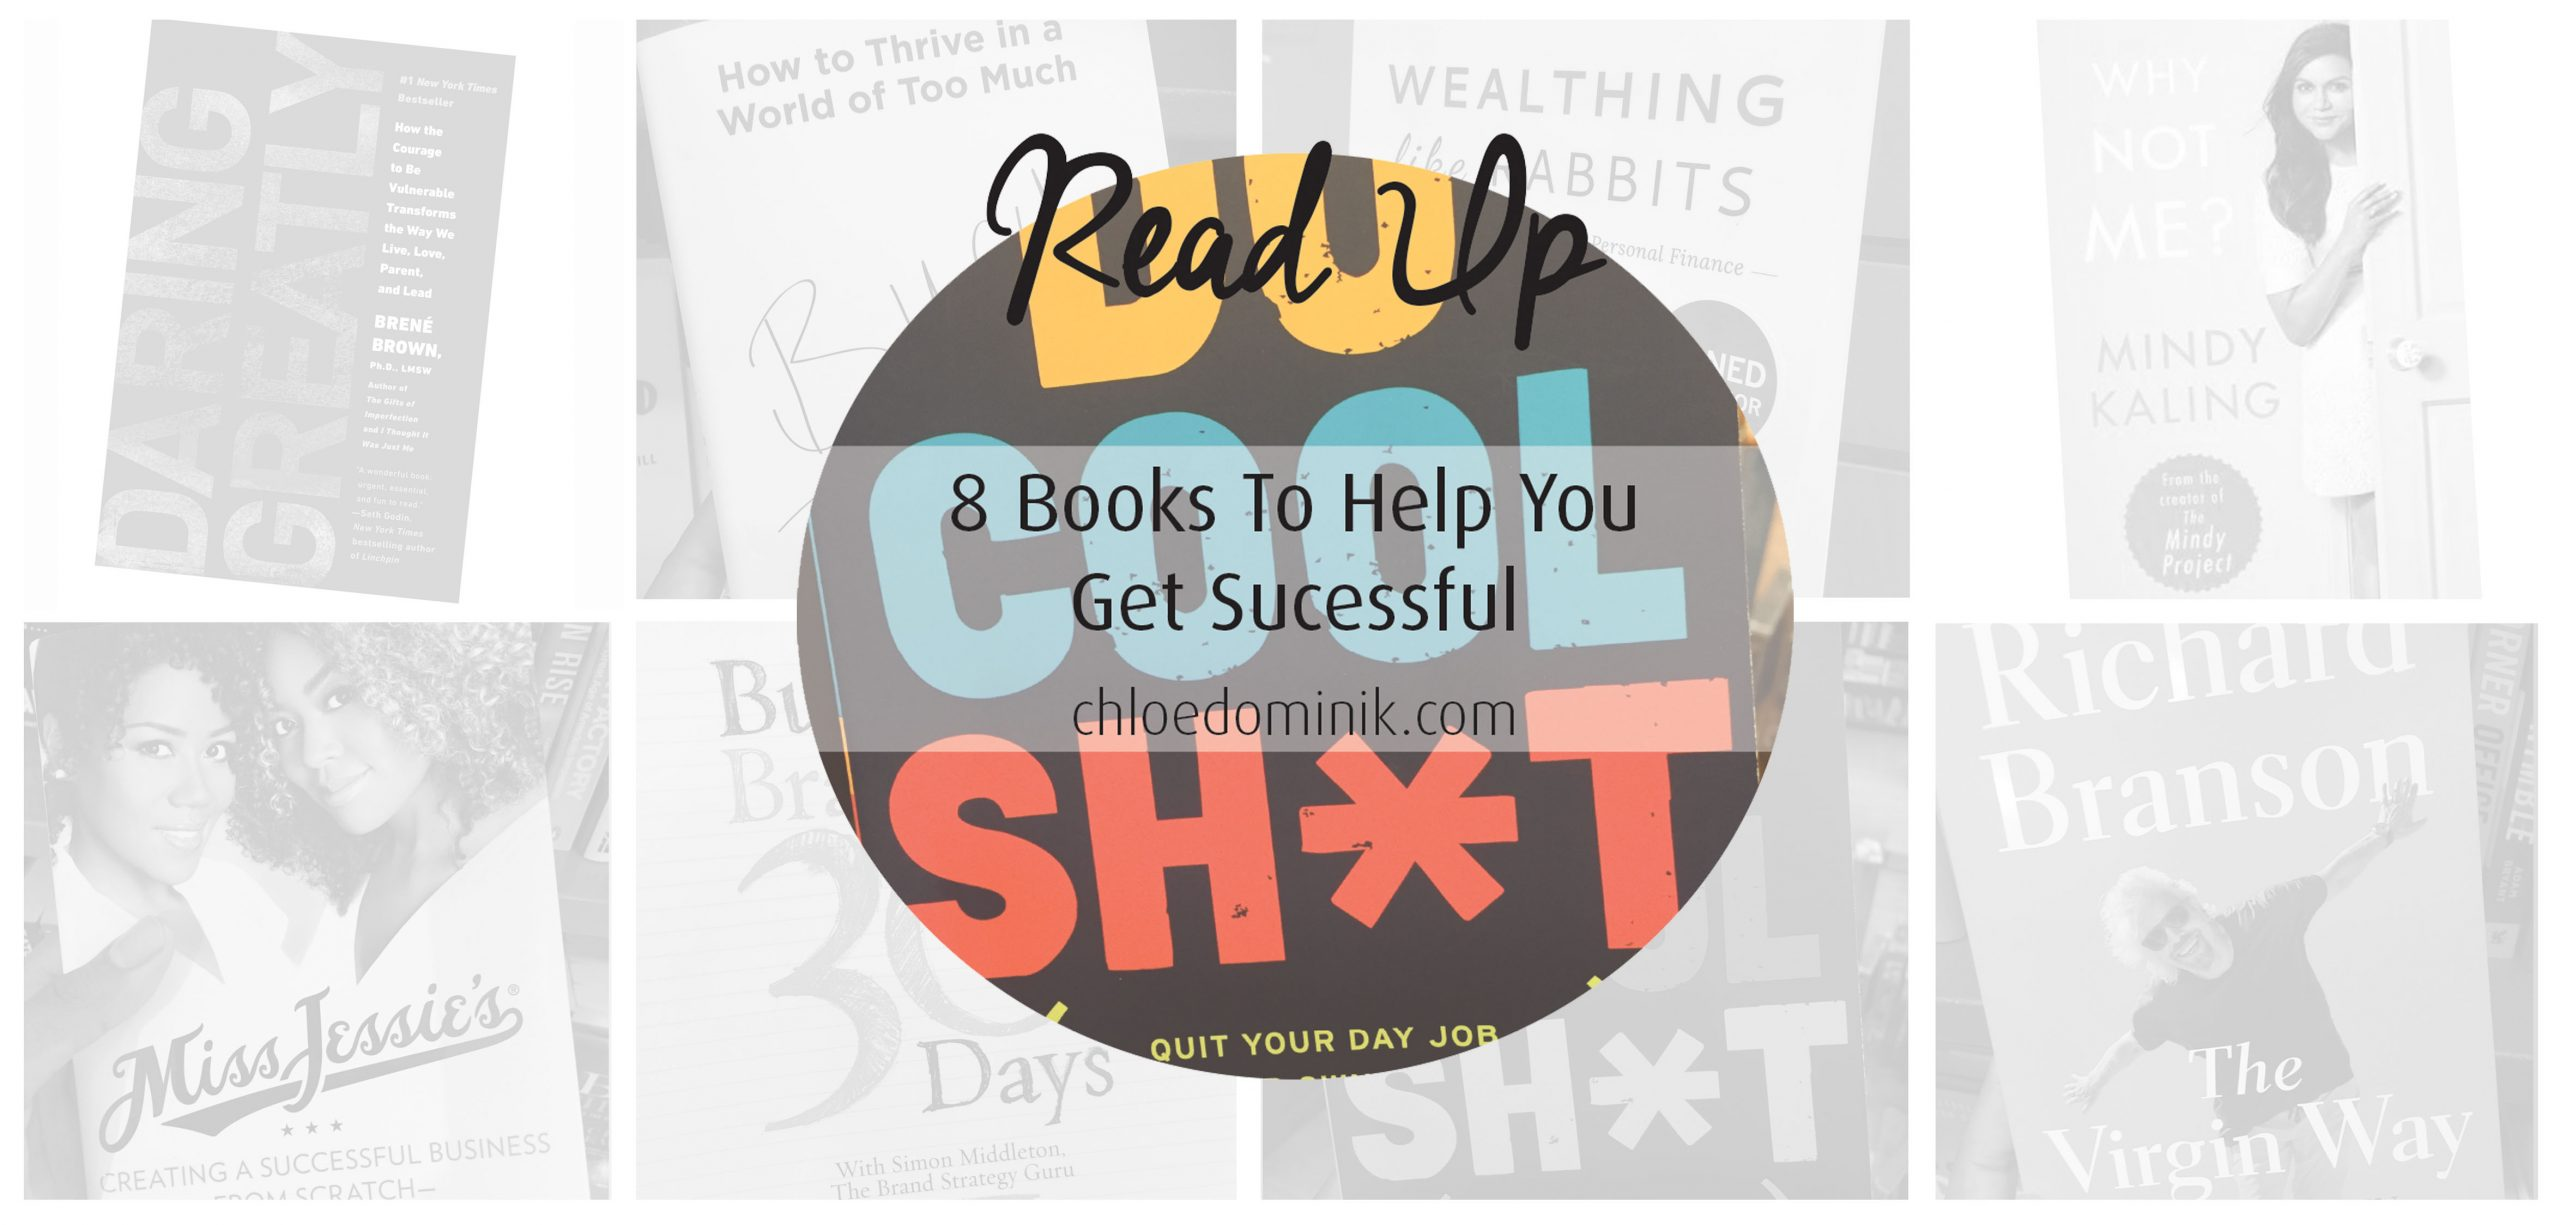 Read Up: 8 Books To Help You Get Successful